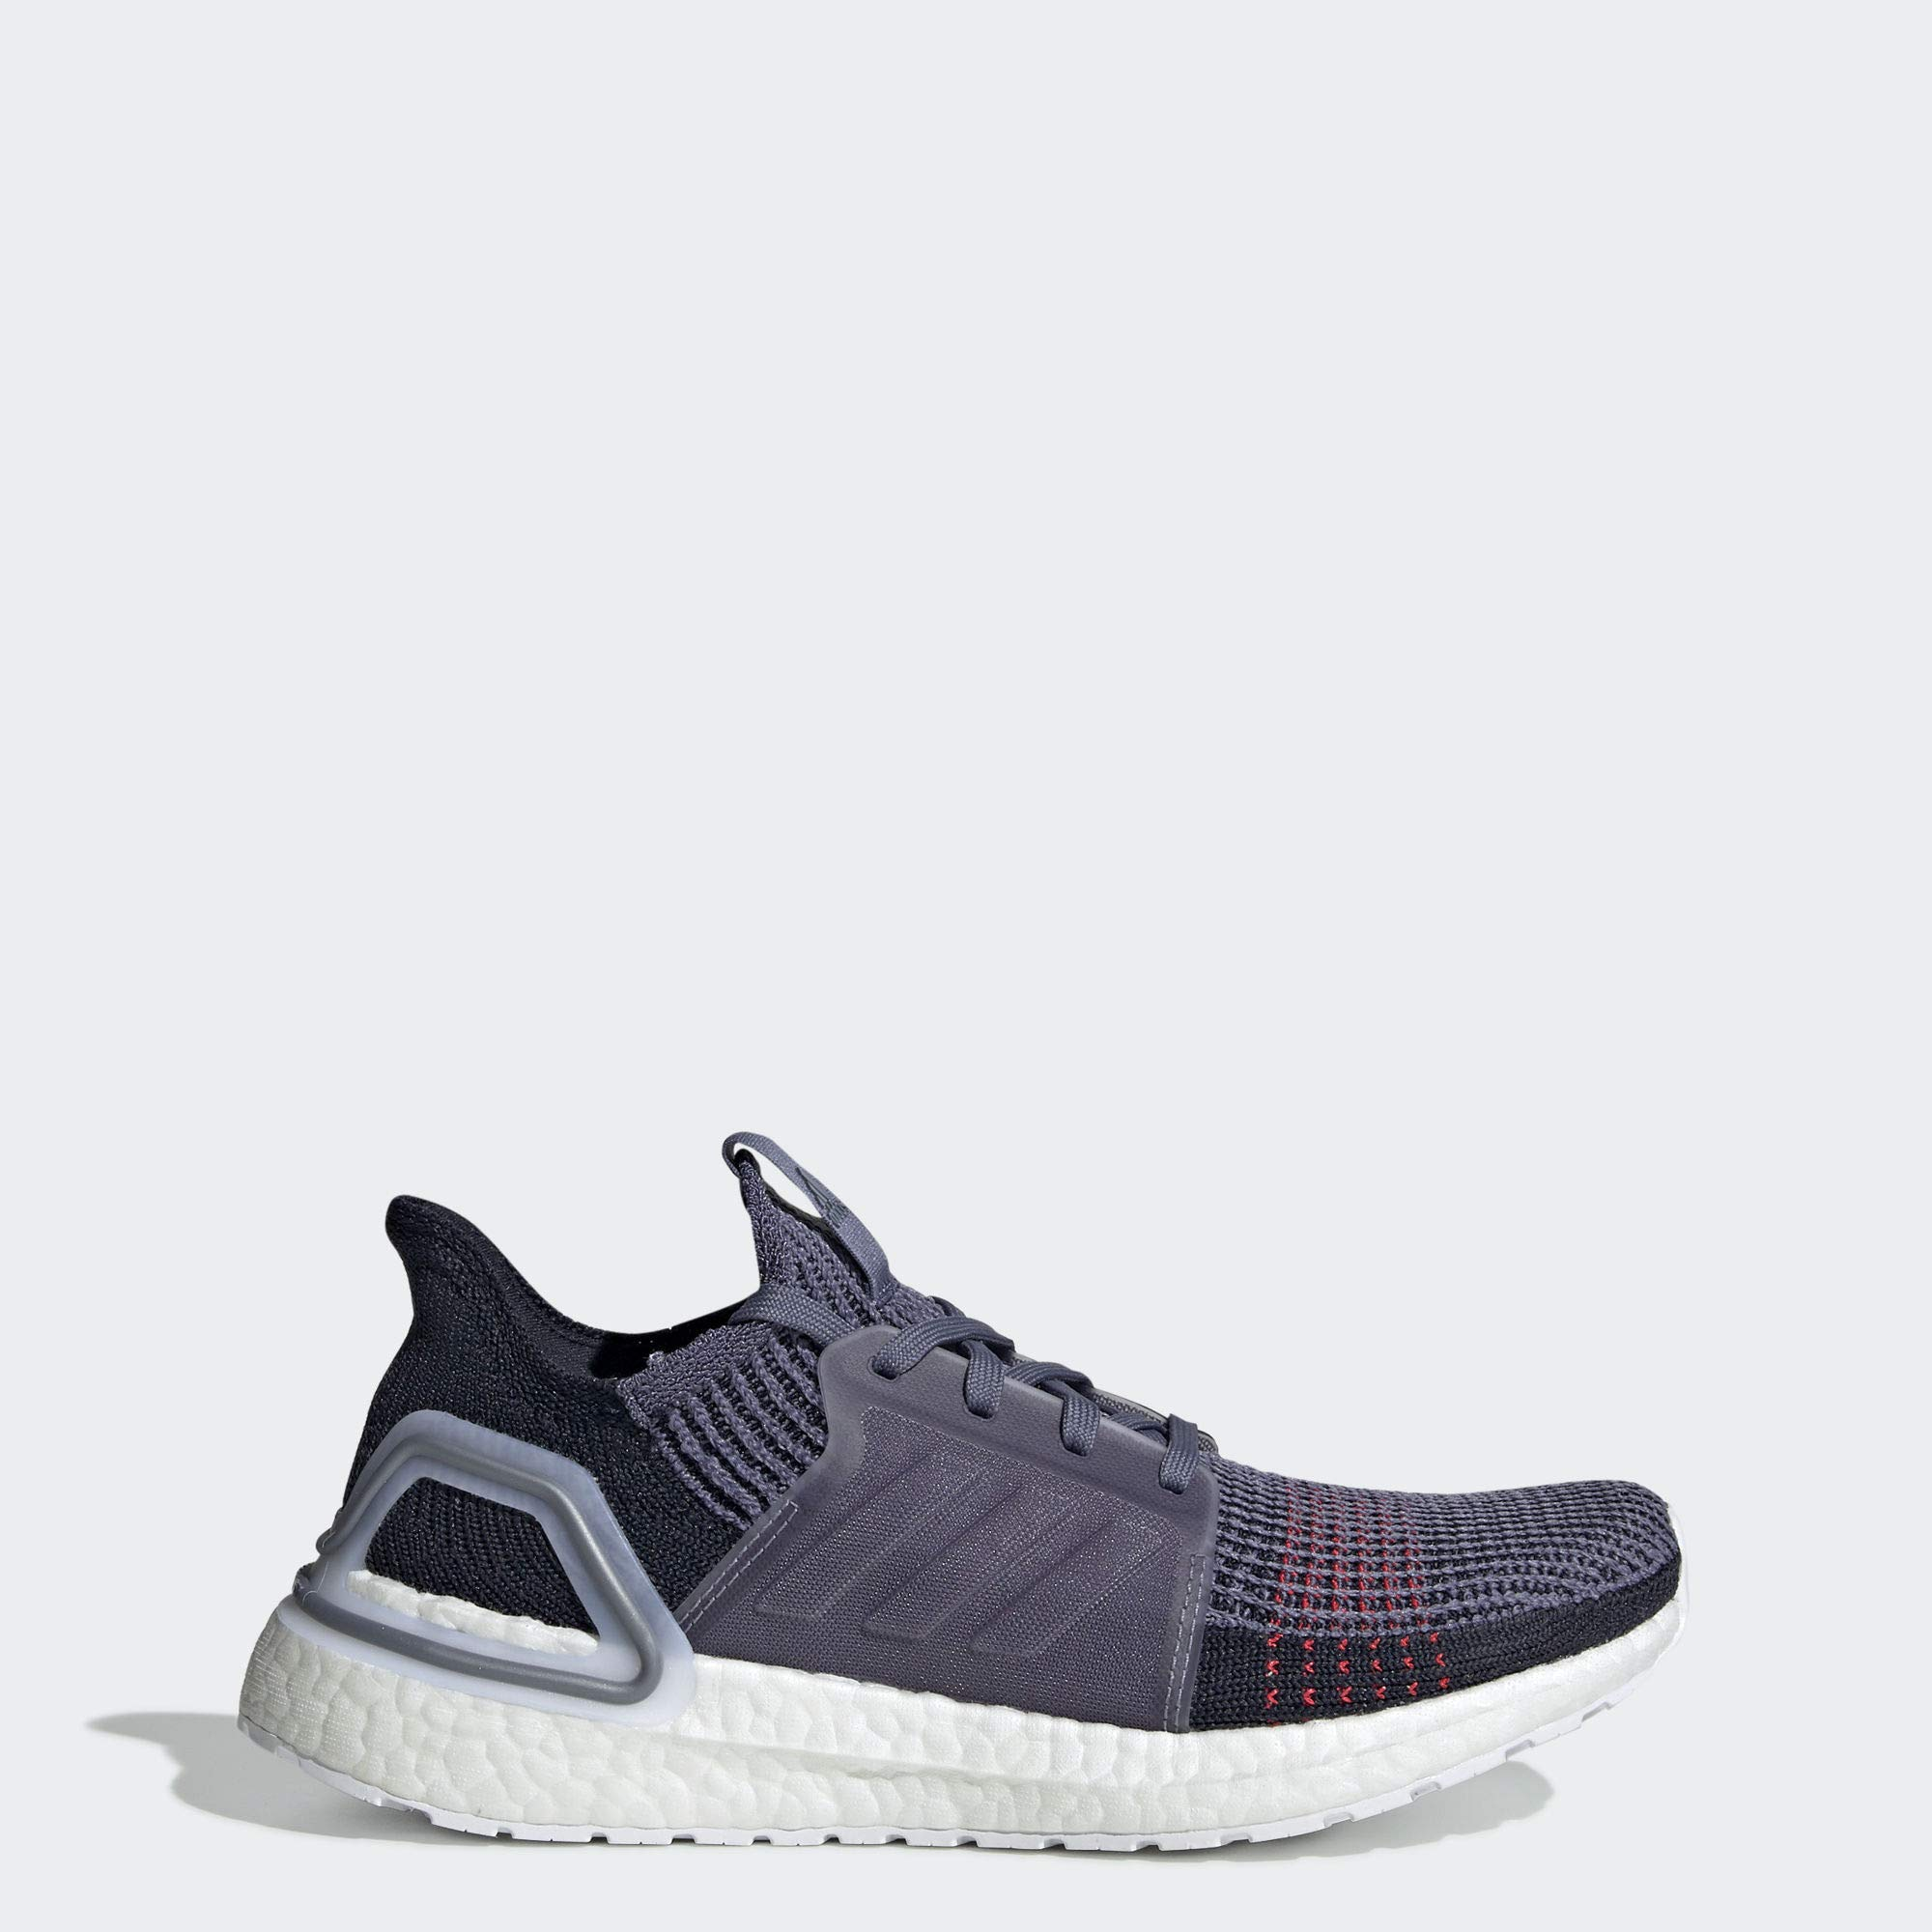 adidas Women's Ultraboost 19, Raw Indigo/Shock Red, 6 M US by adidas